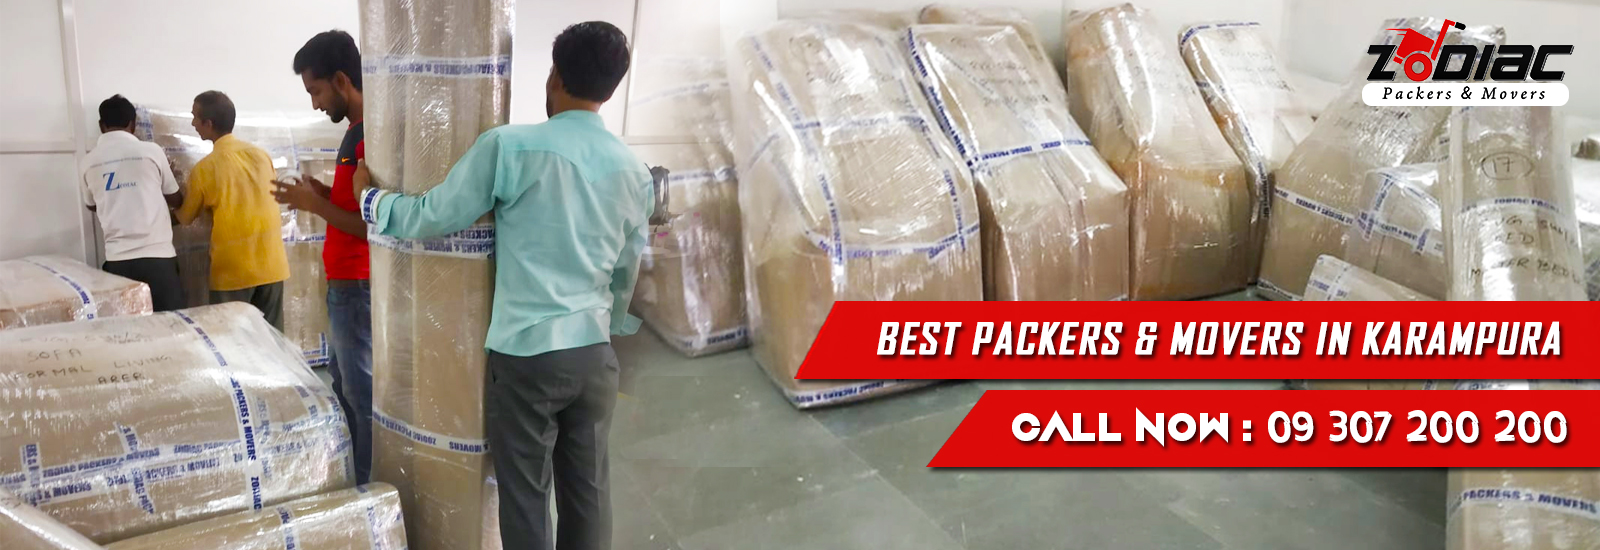 Packers and Movers in Karampura